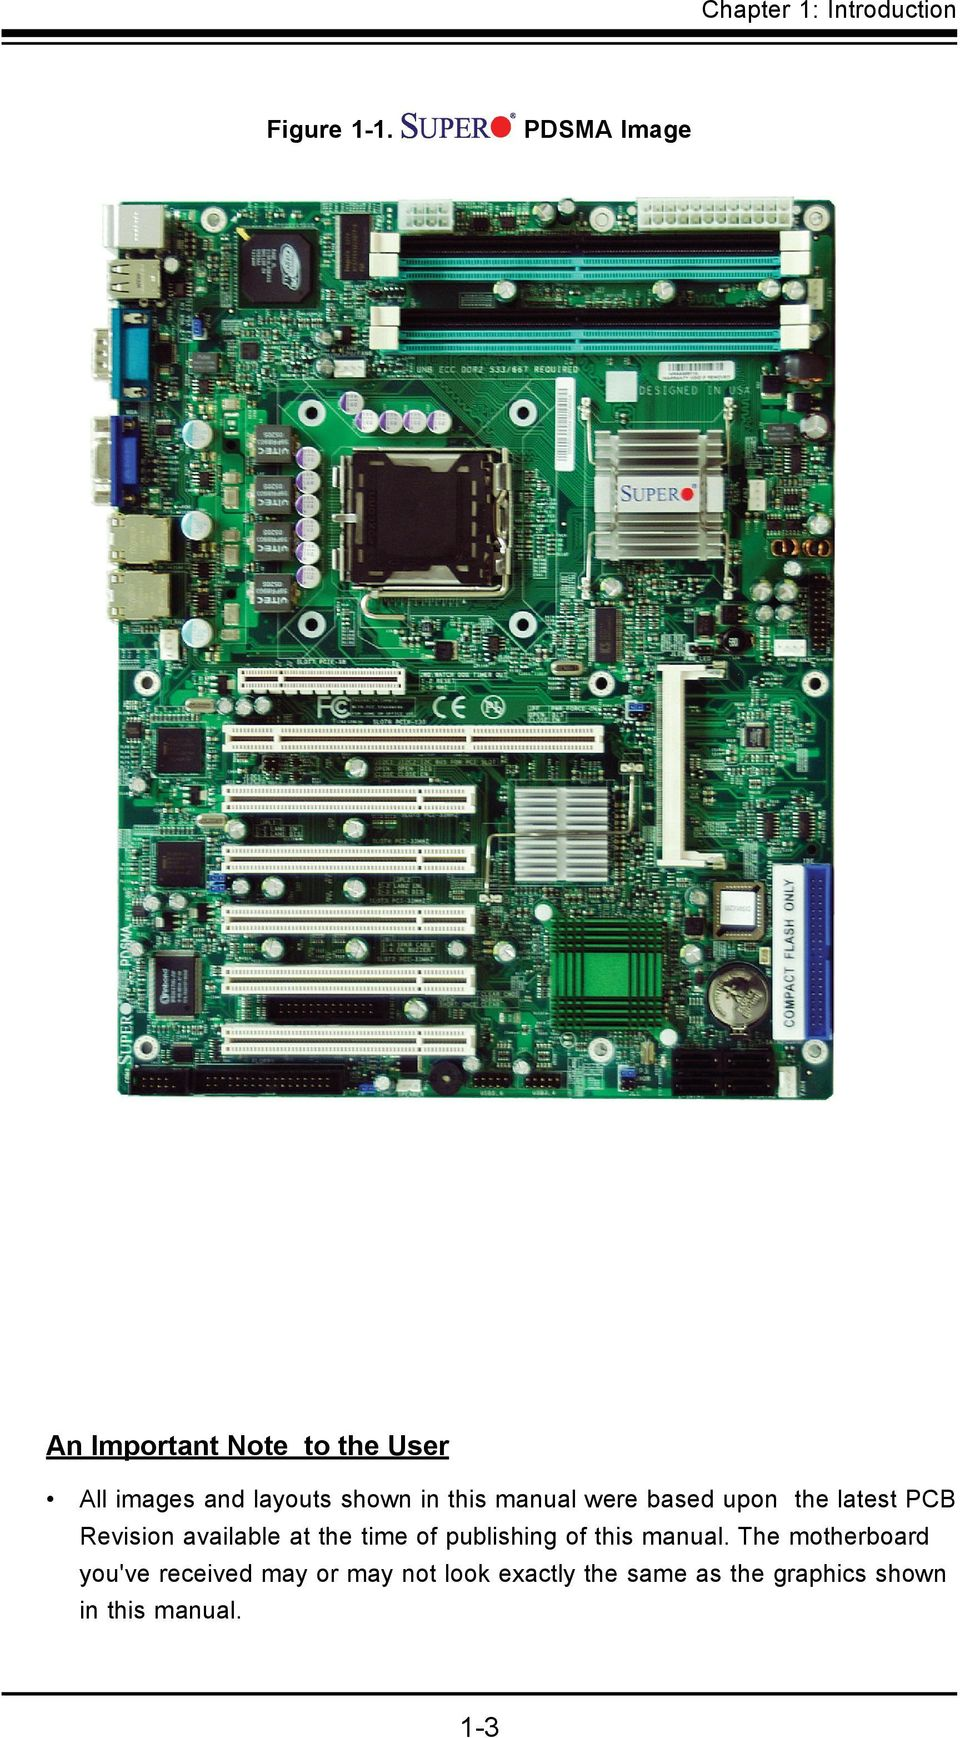 Pdsma User S Manual Revision 10d Pdf Block Diagrams Conroe Left Presler Right Click To Enlarge Were Based Upon The Latest Pcb Available At Time Of